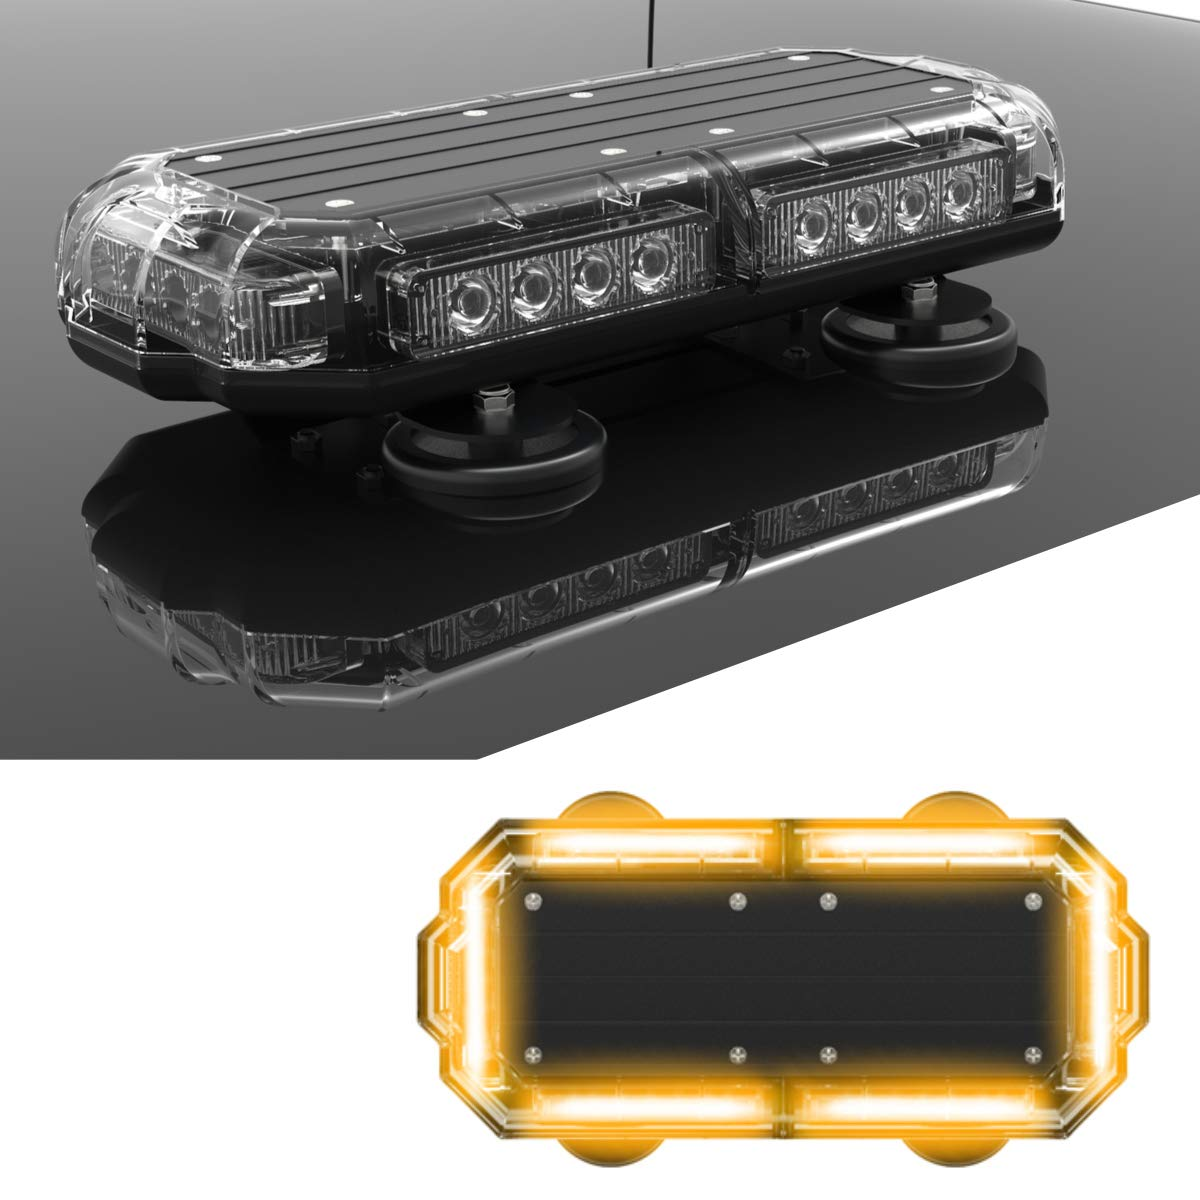 Plows Amber//Amber SpeedTech Lights Mini 14 72 Watts LED Strobe Lights for Trucks and Emergency Vehicles with Magnetic Roof Mount Cars Yellow//Yellow